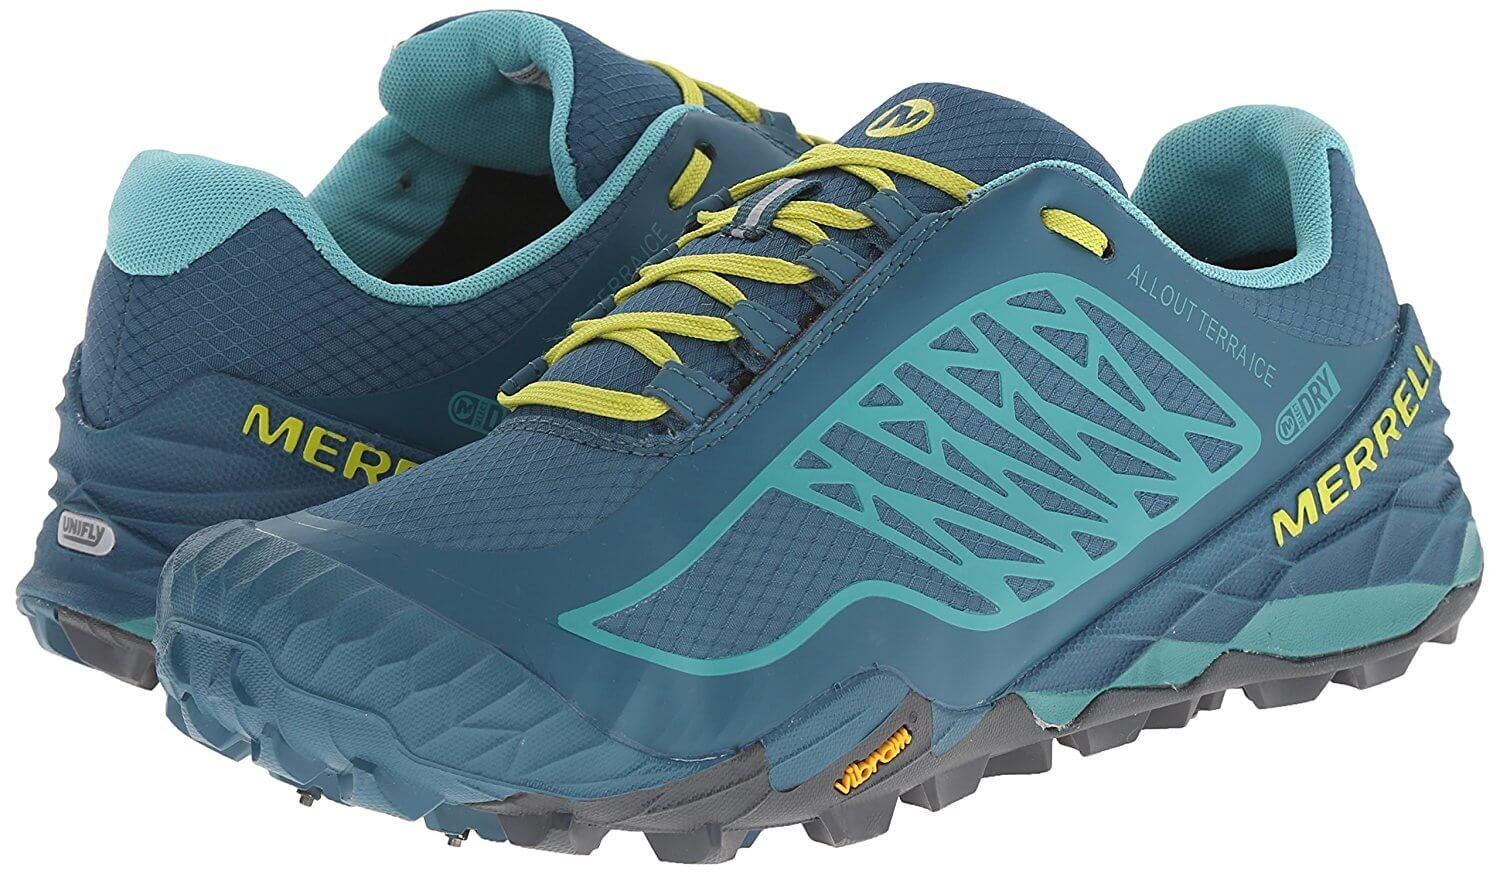 Merrell All Out Terra Ice 5